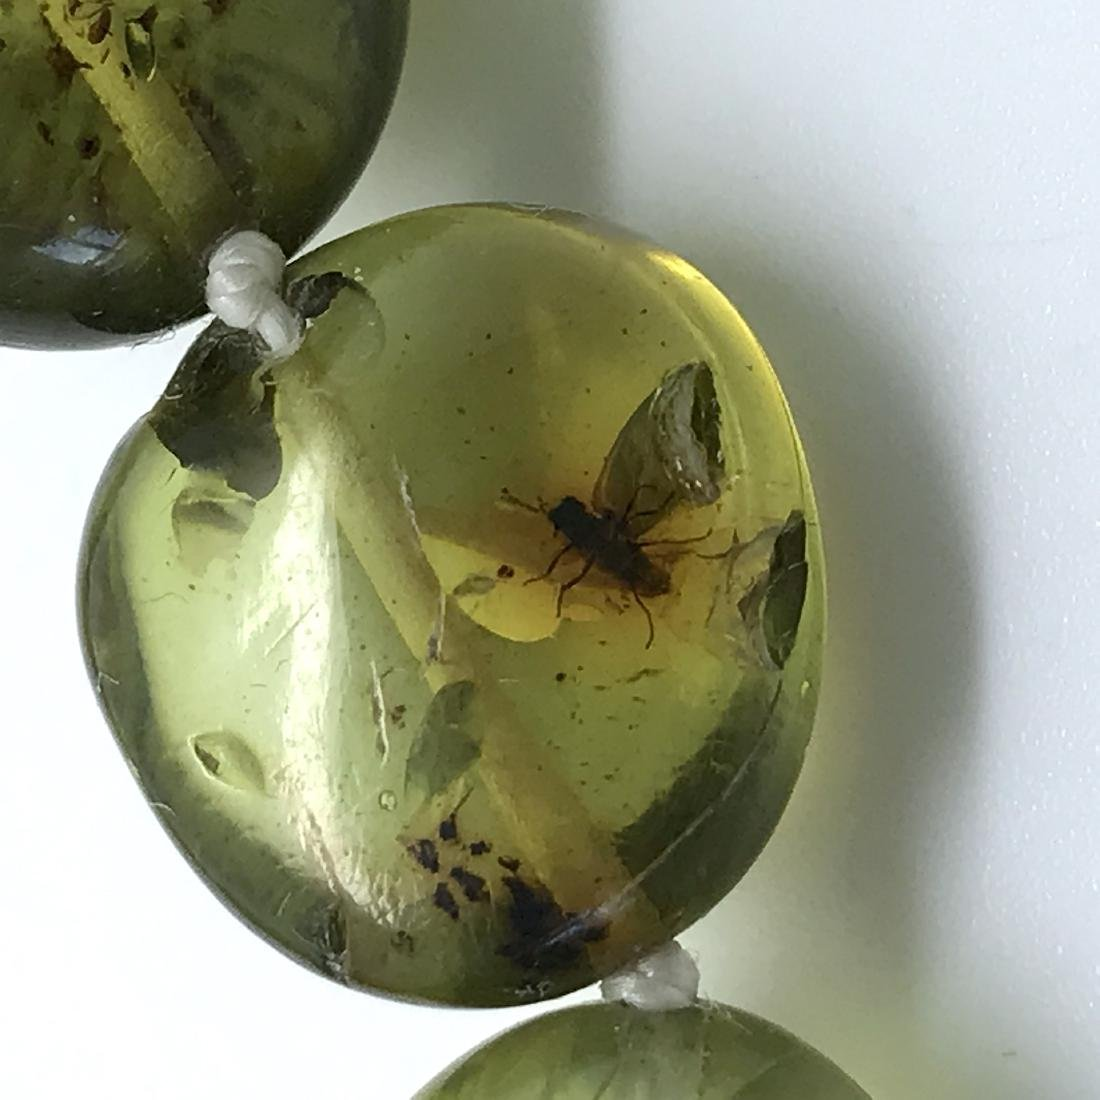 Vintage necklace green amber with antique insect - 3